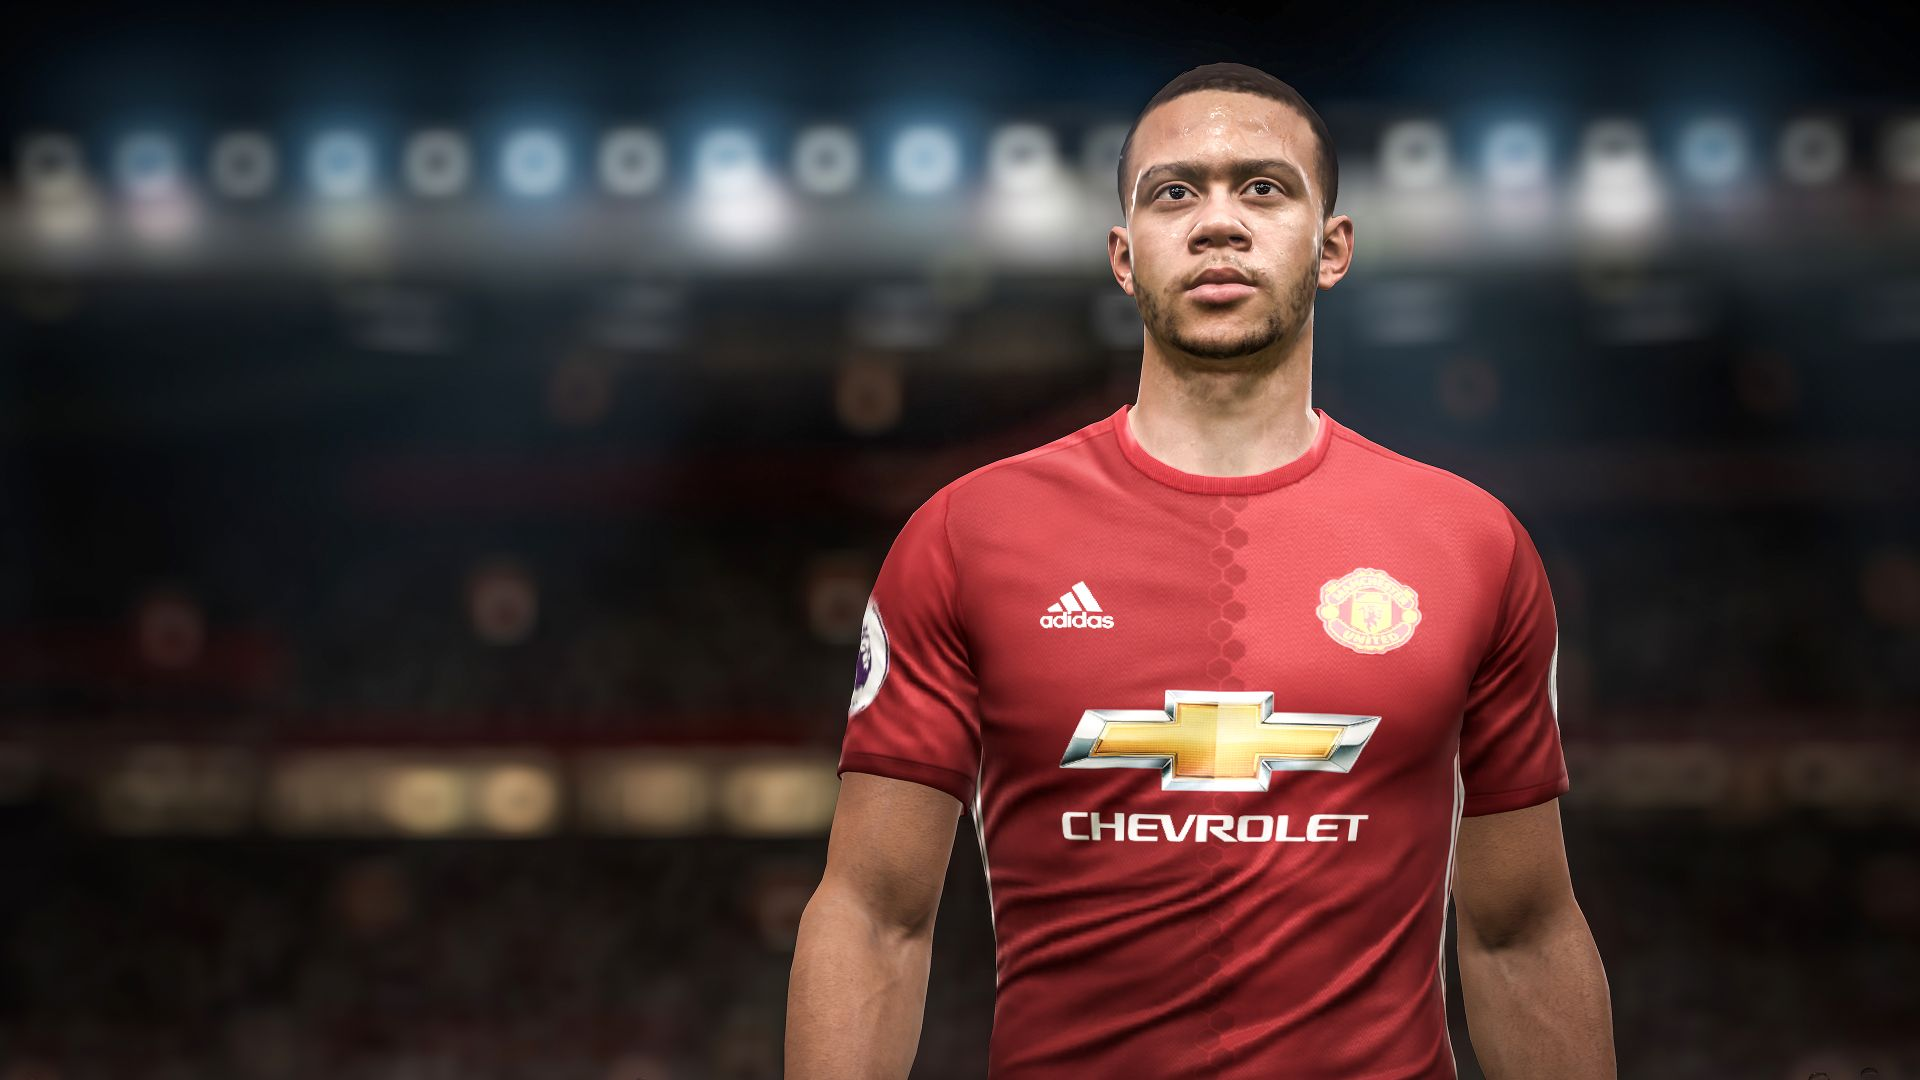 https://data2.origin.com/live/content/dam/originx/web/app/games/fifa/fifa-17/screenshots/fifa-17/DEPAY_pdp_screenhi_3840x2160_en_ww.jpg